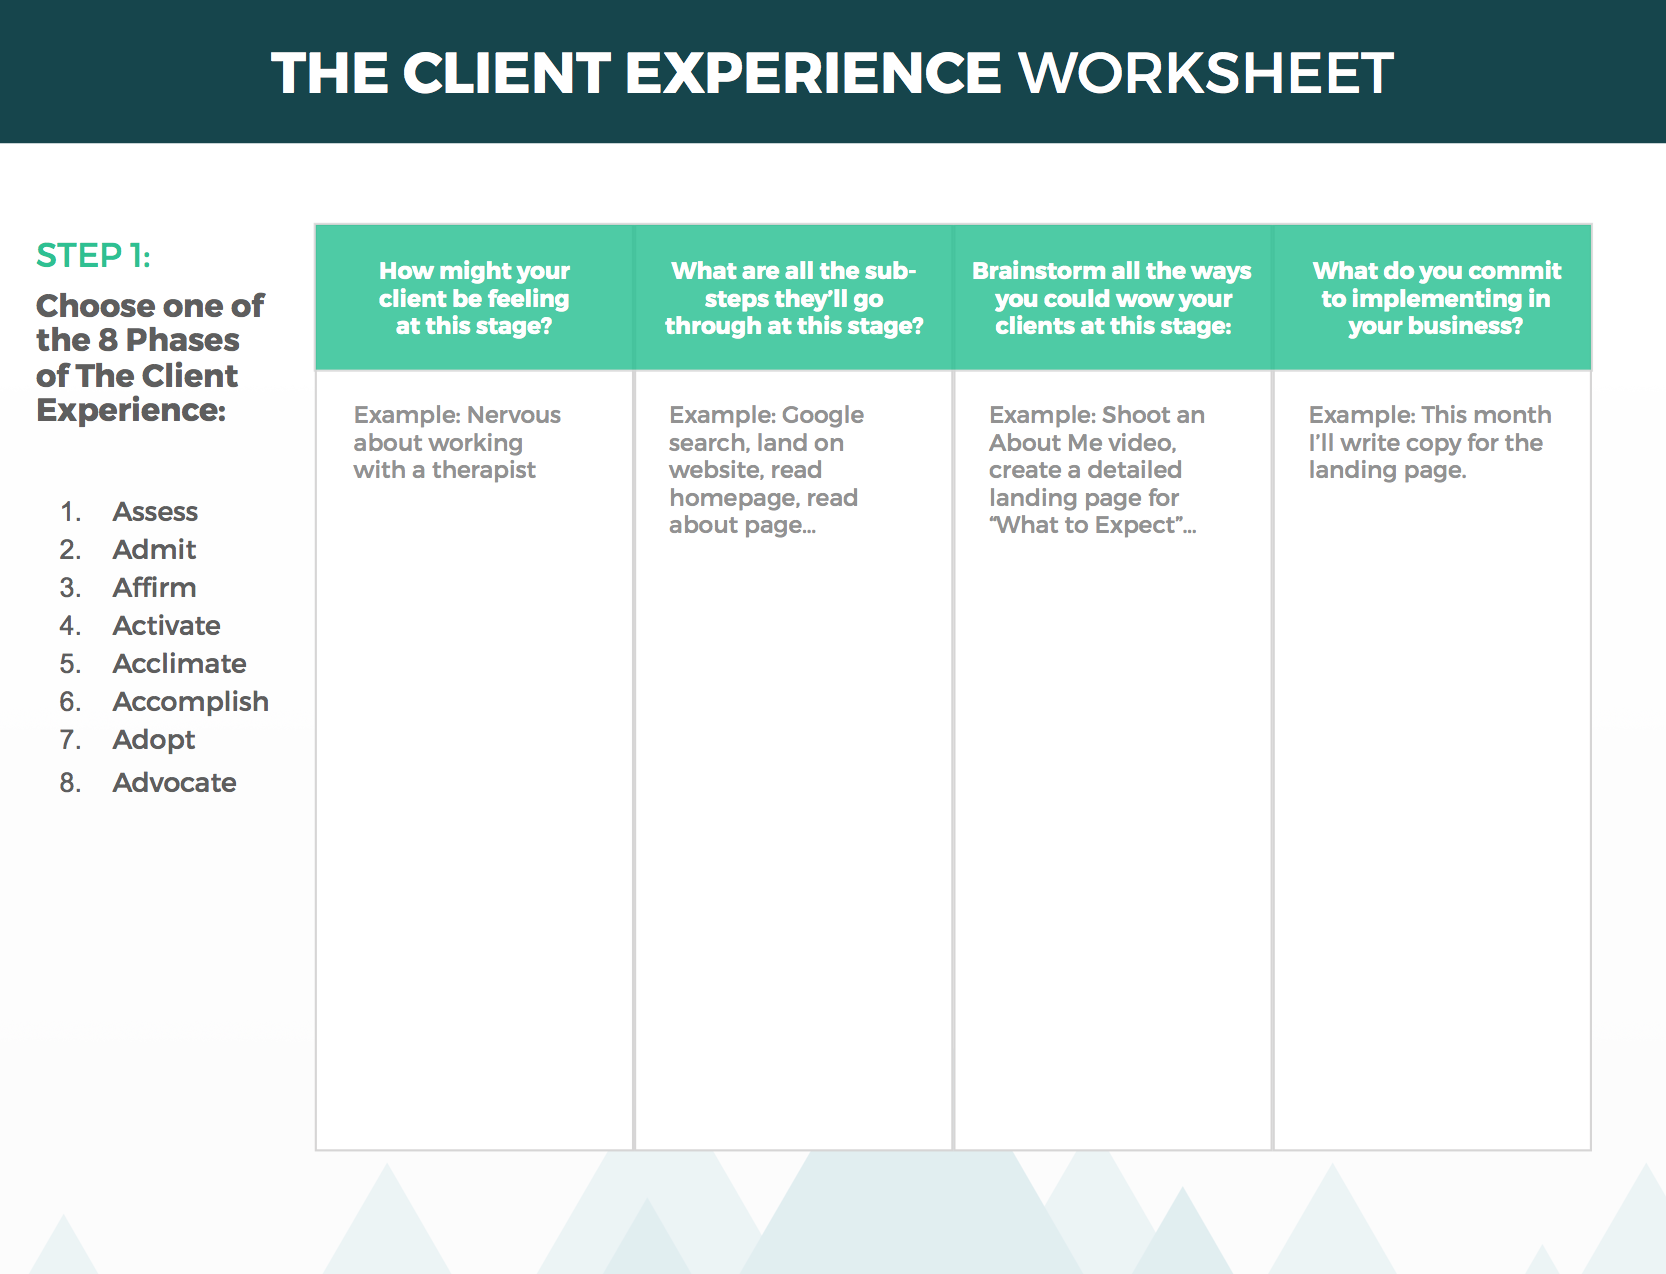 The Client Experience Worksheet